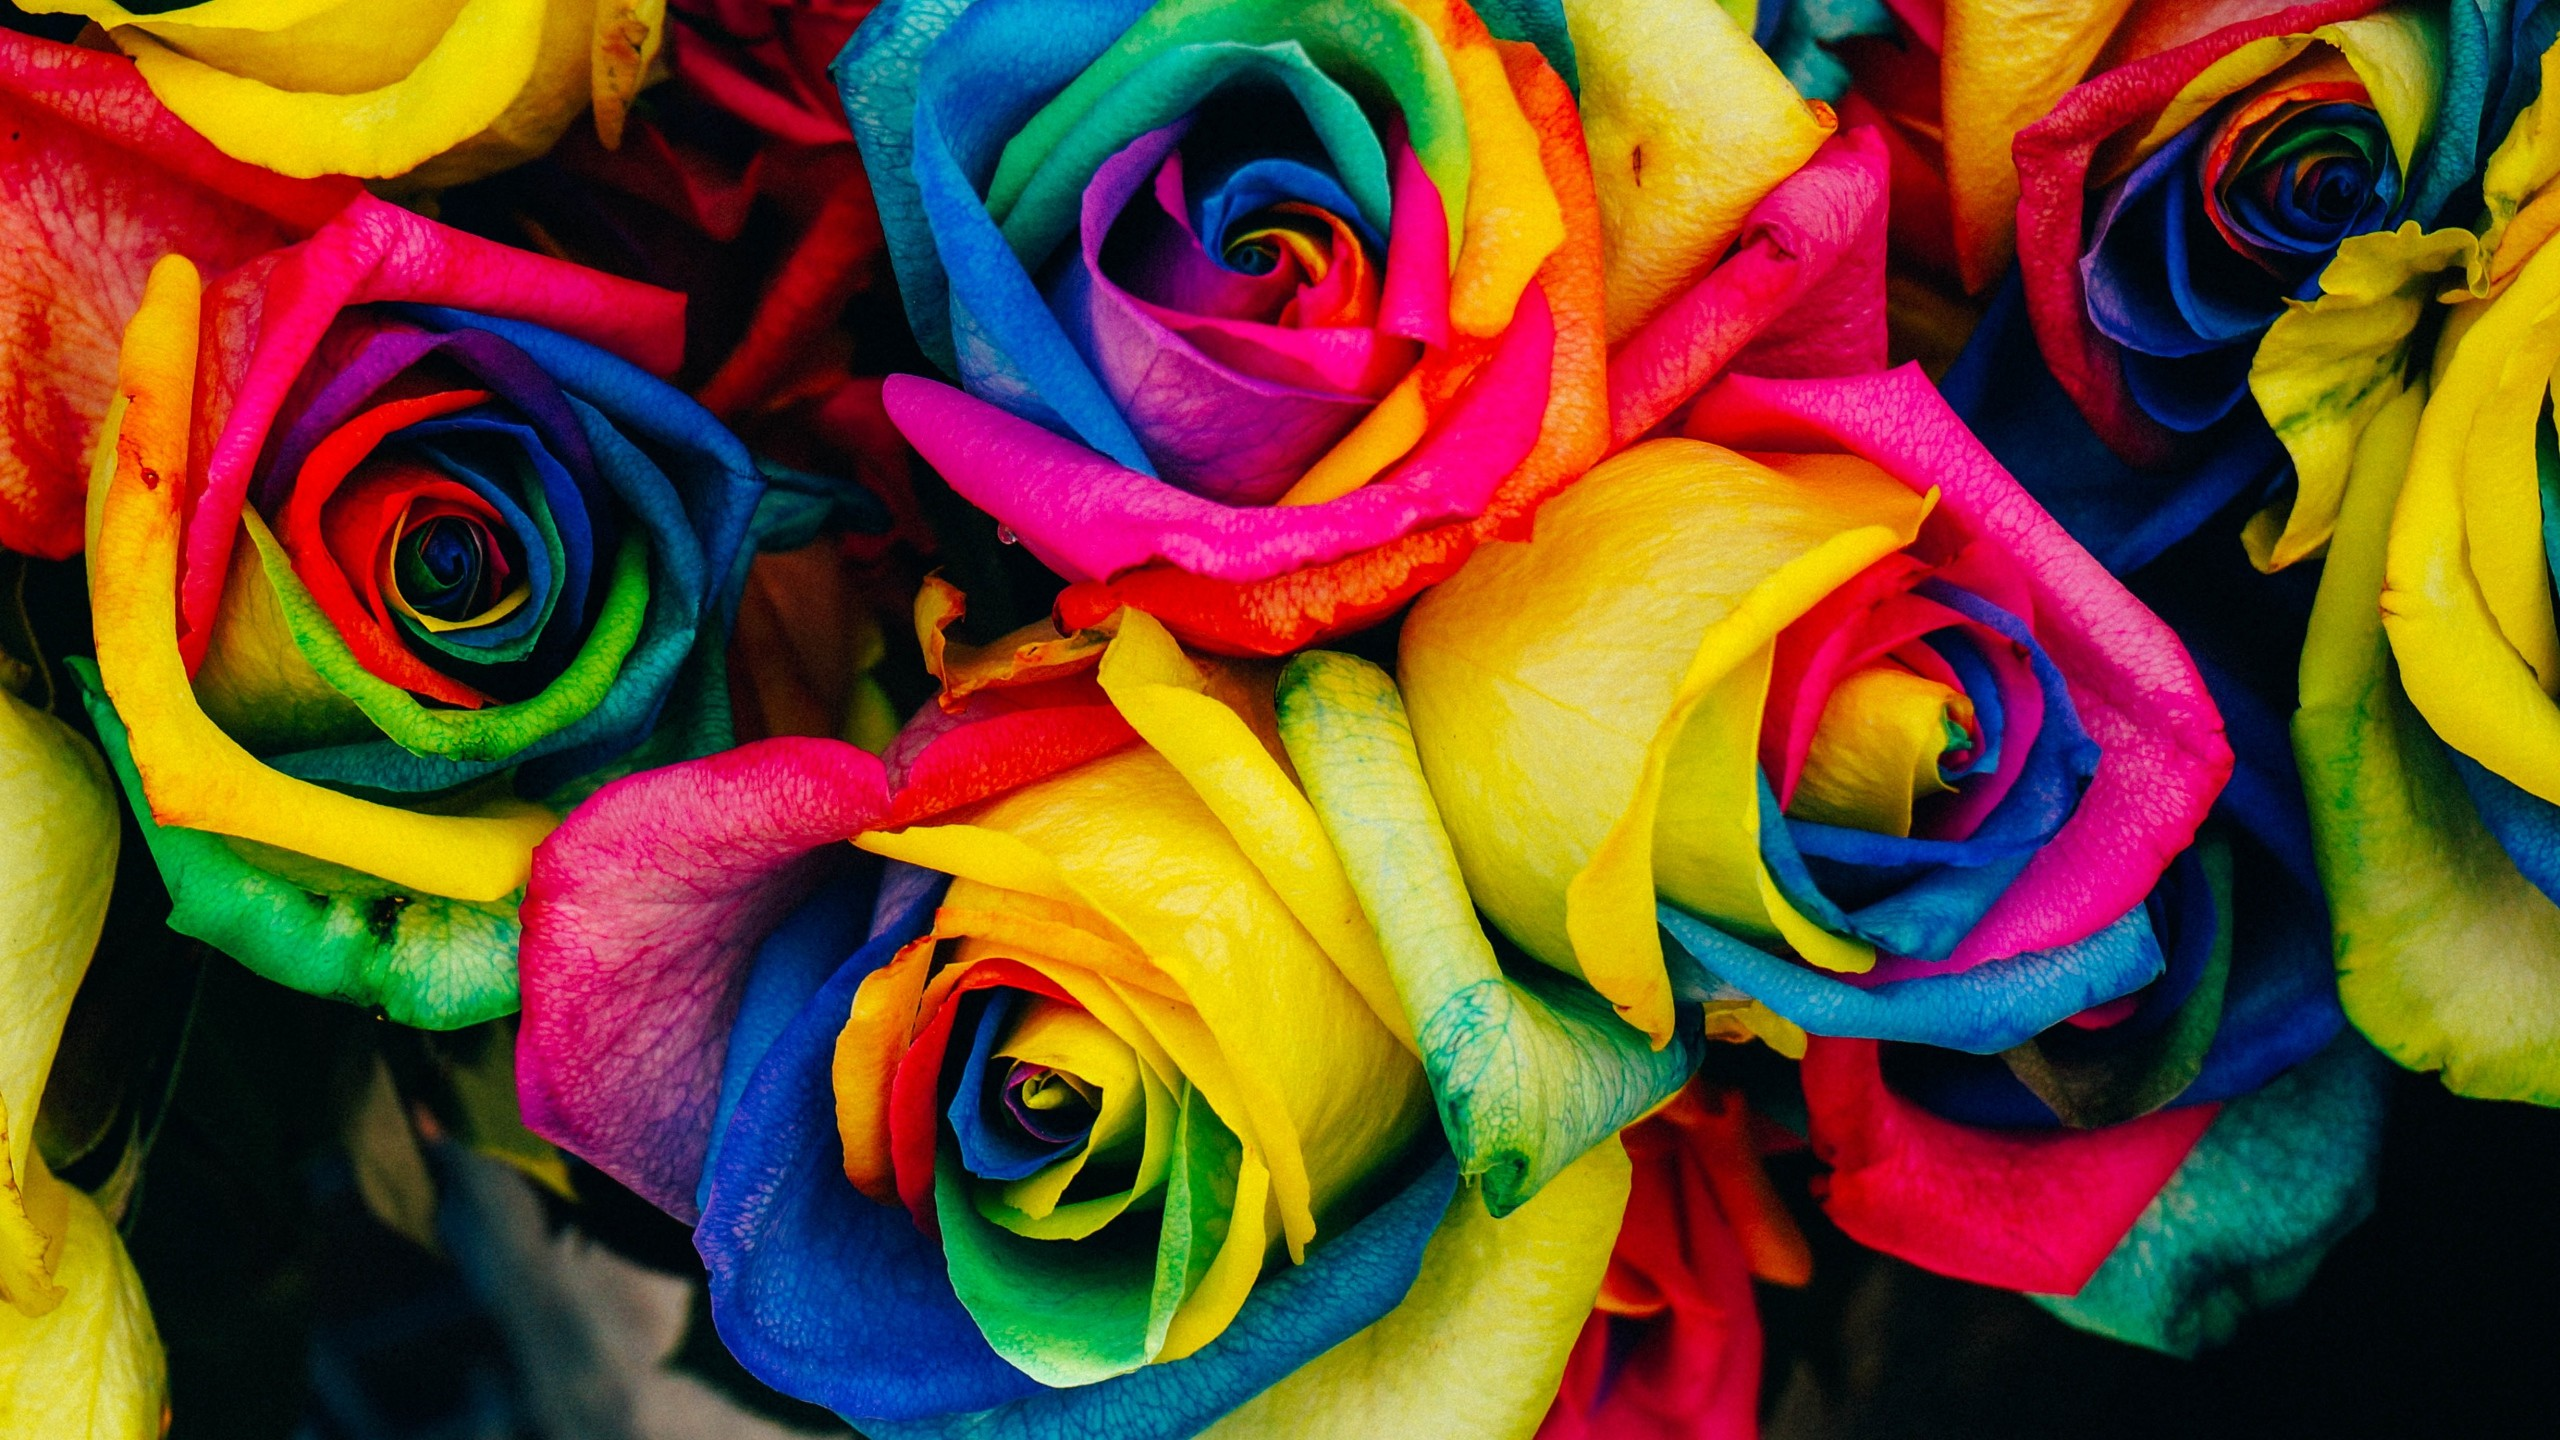 2560x1440 HD Wallpaper Roses, Multicolored, Rainbow